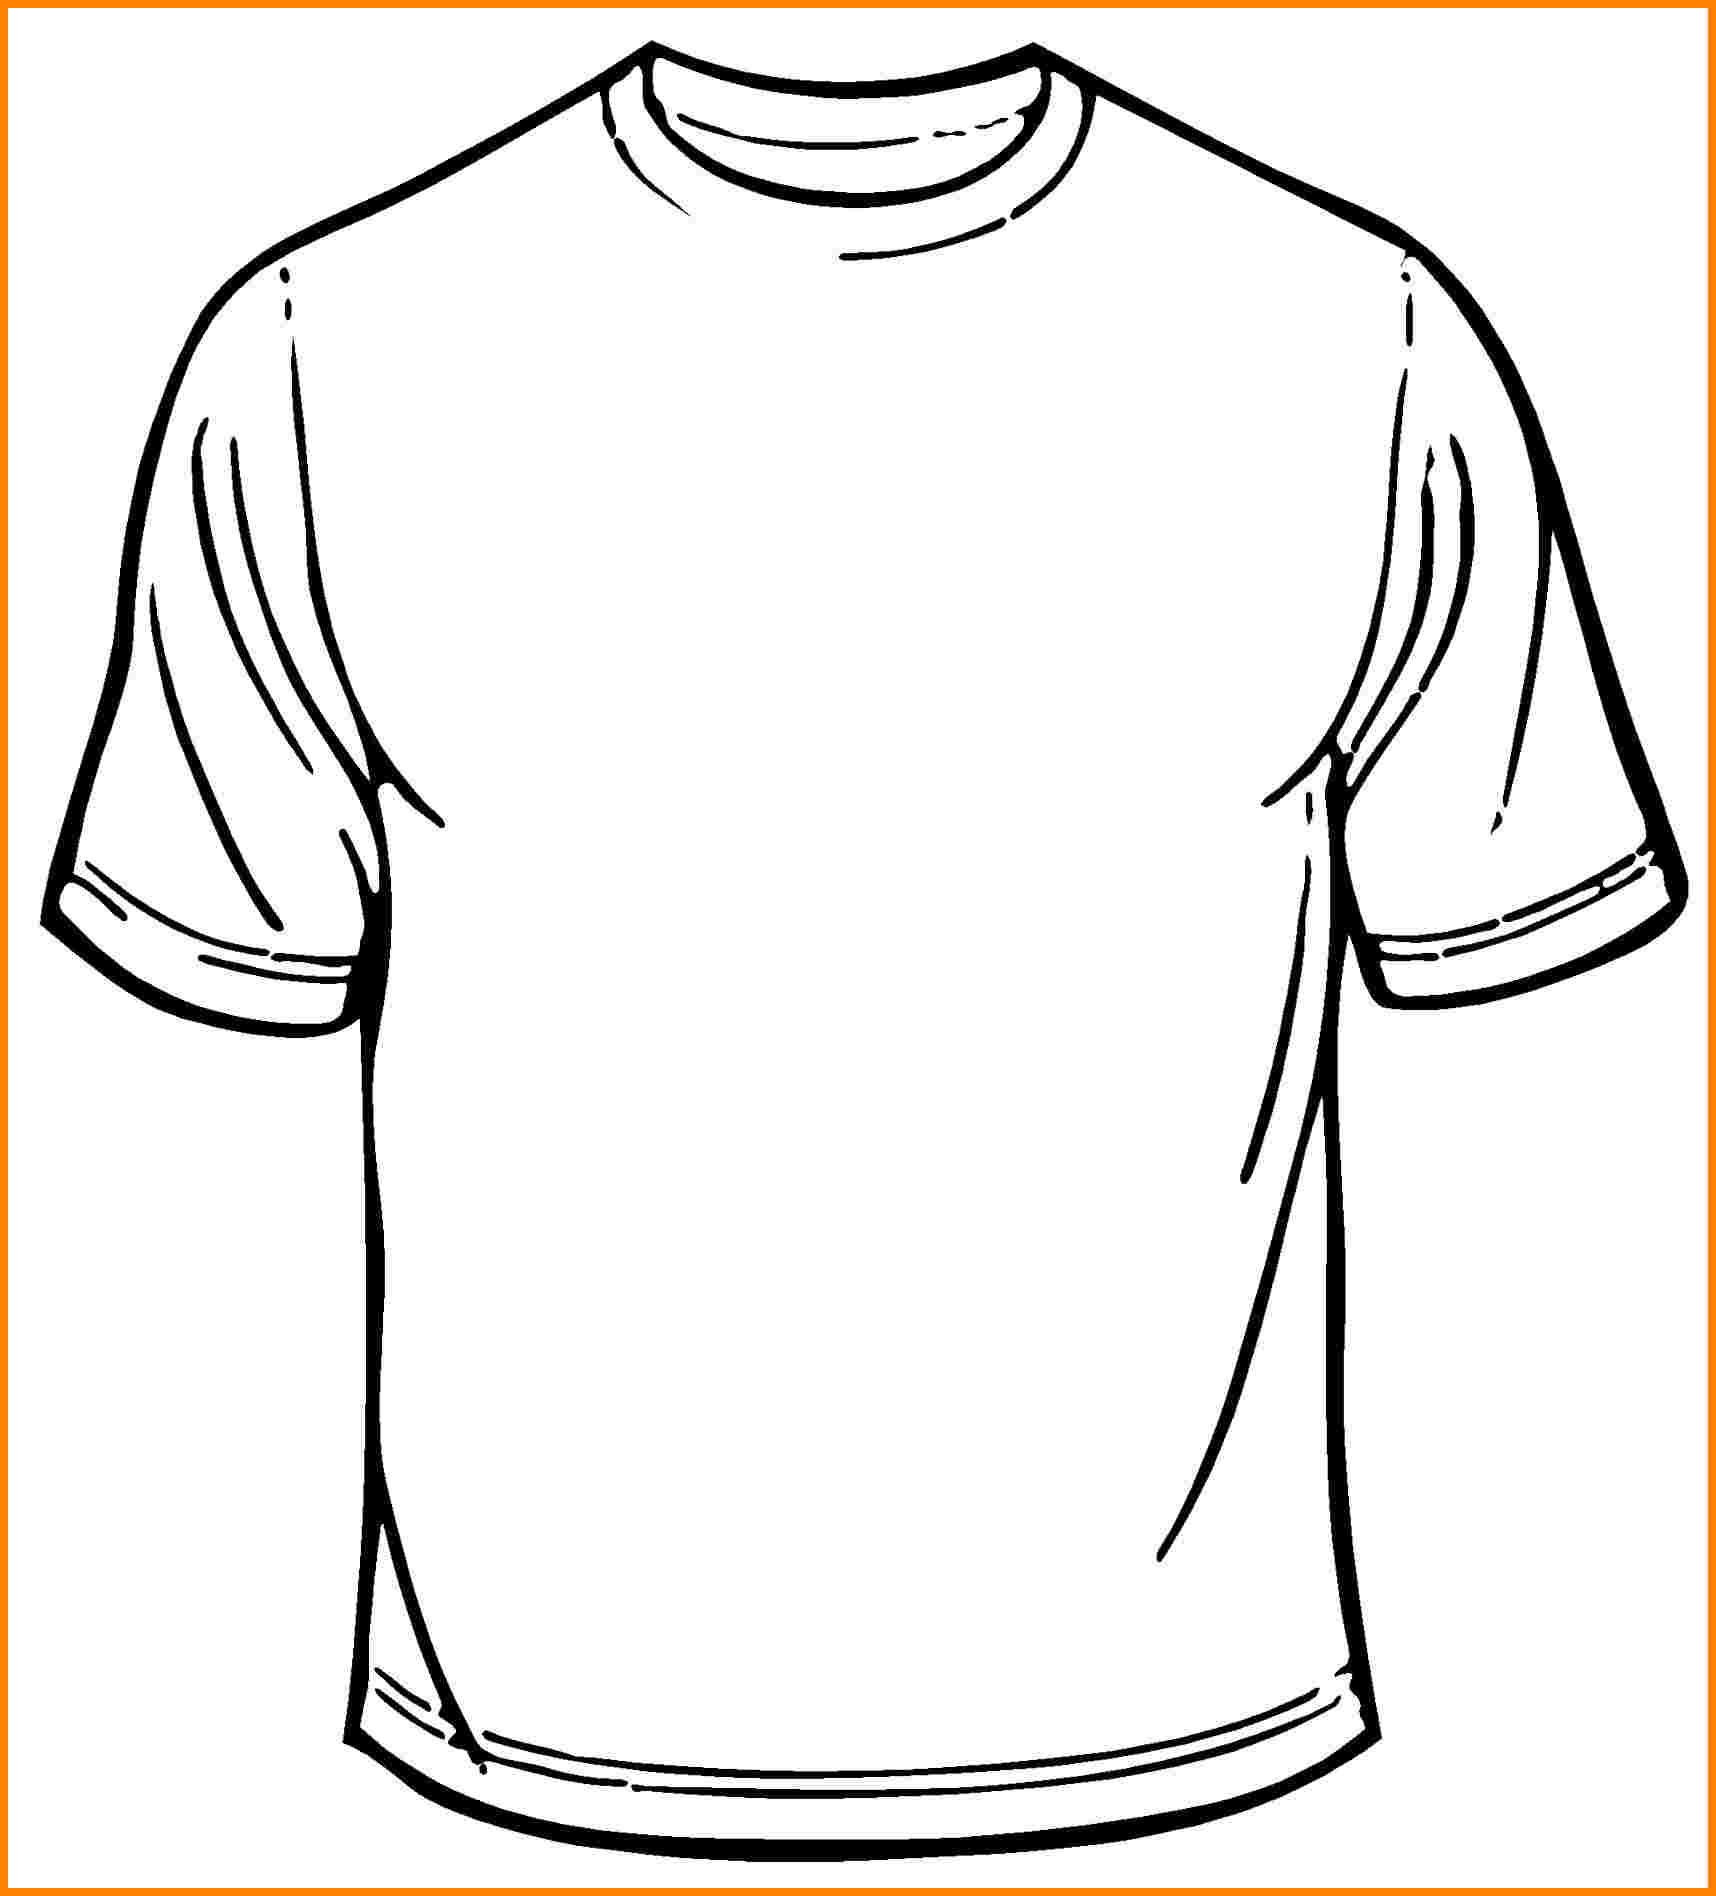 picture royalty free T shirt at getdrawings. Drawing shirts outline